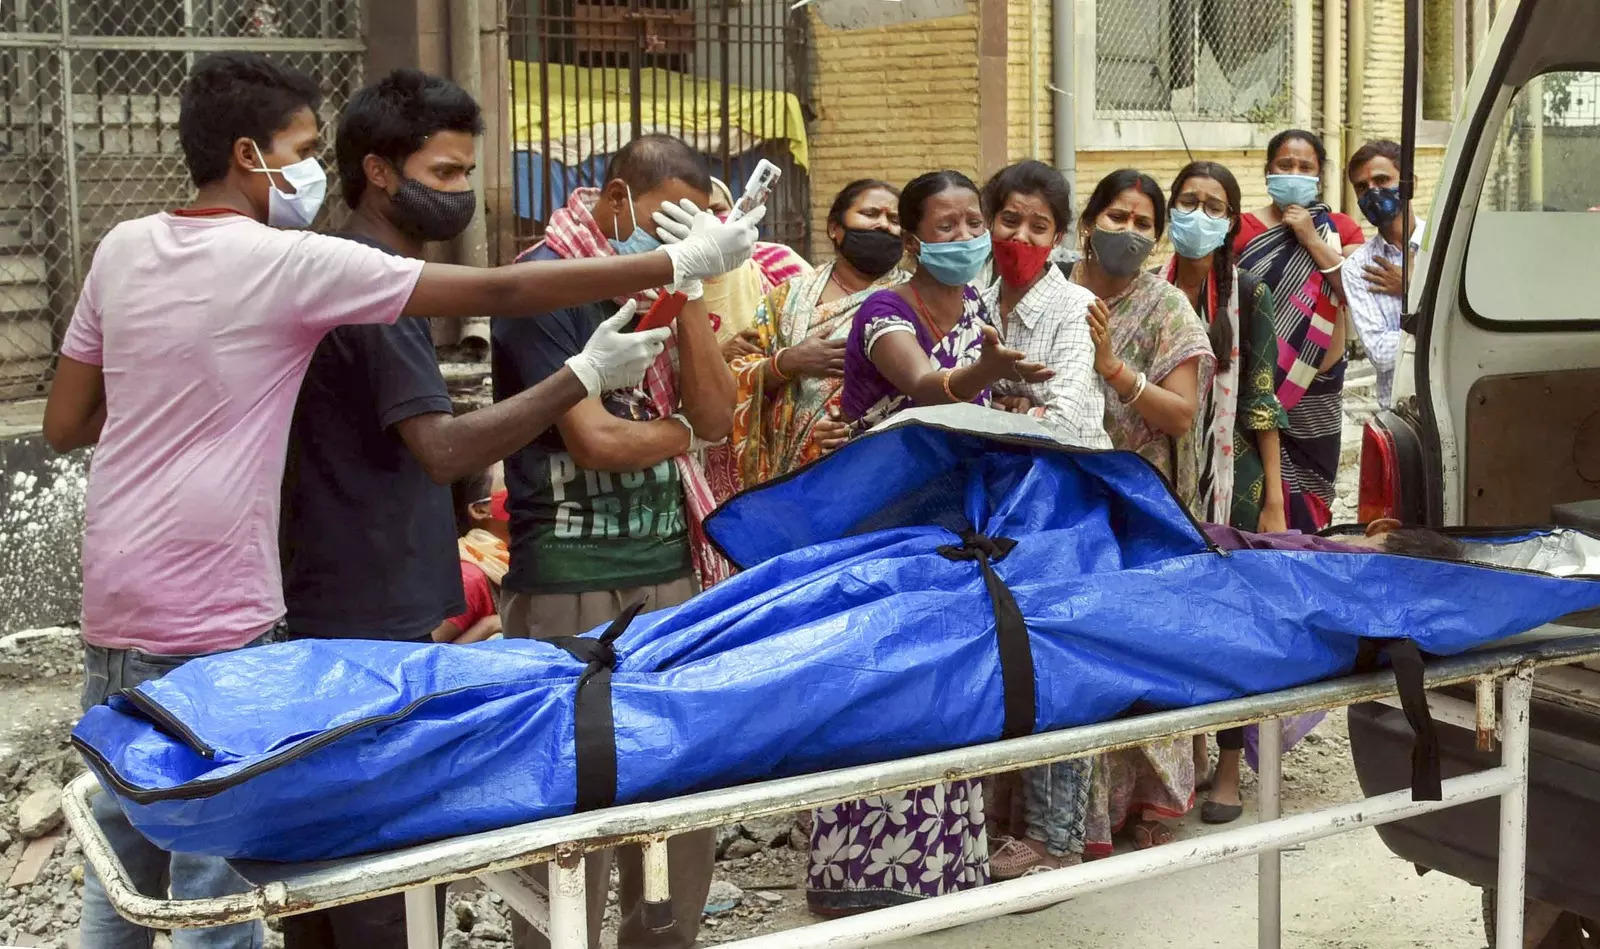 India records more than 4,000 daily Covid-19 deaths